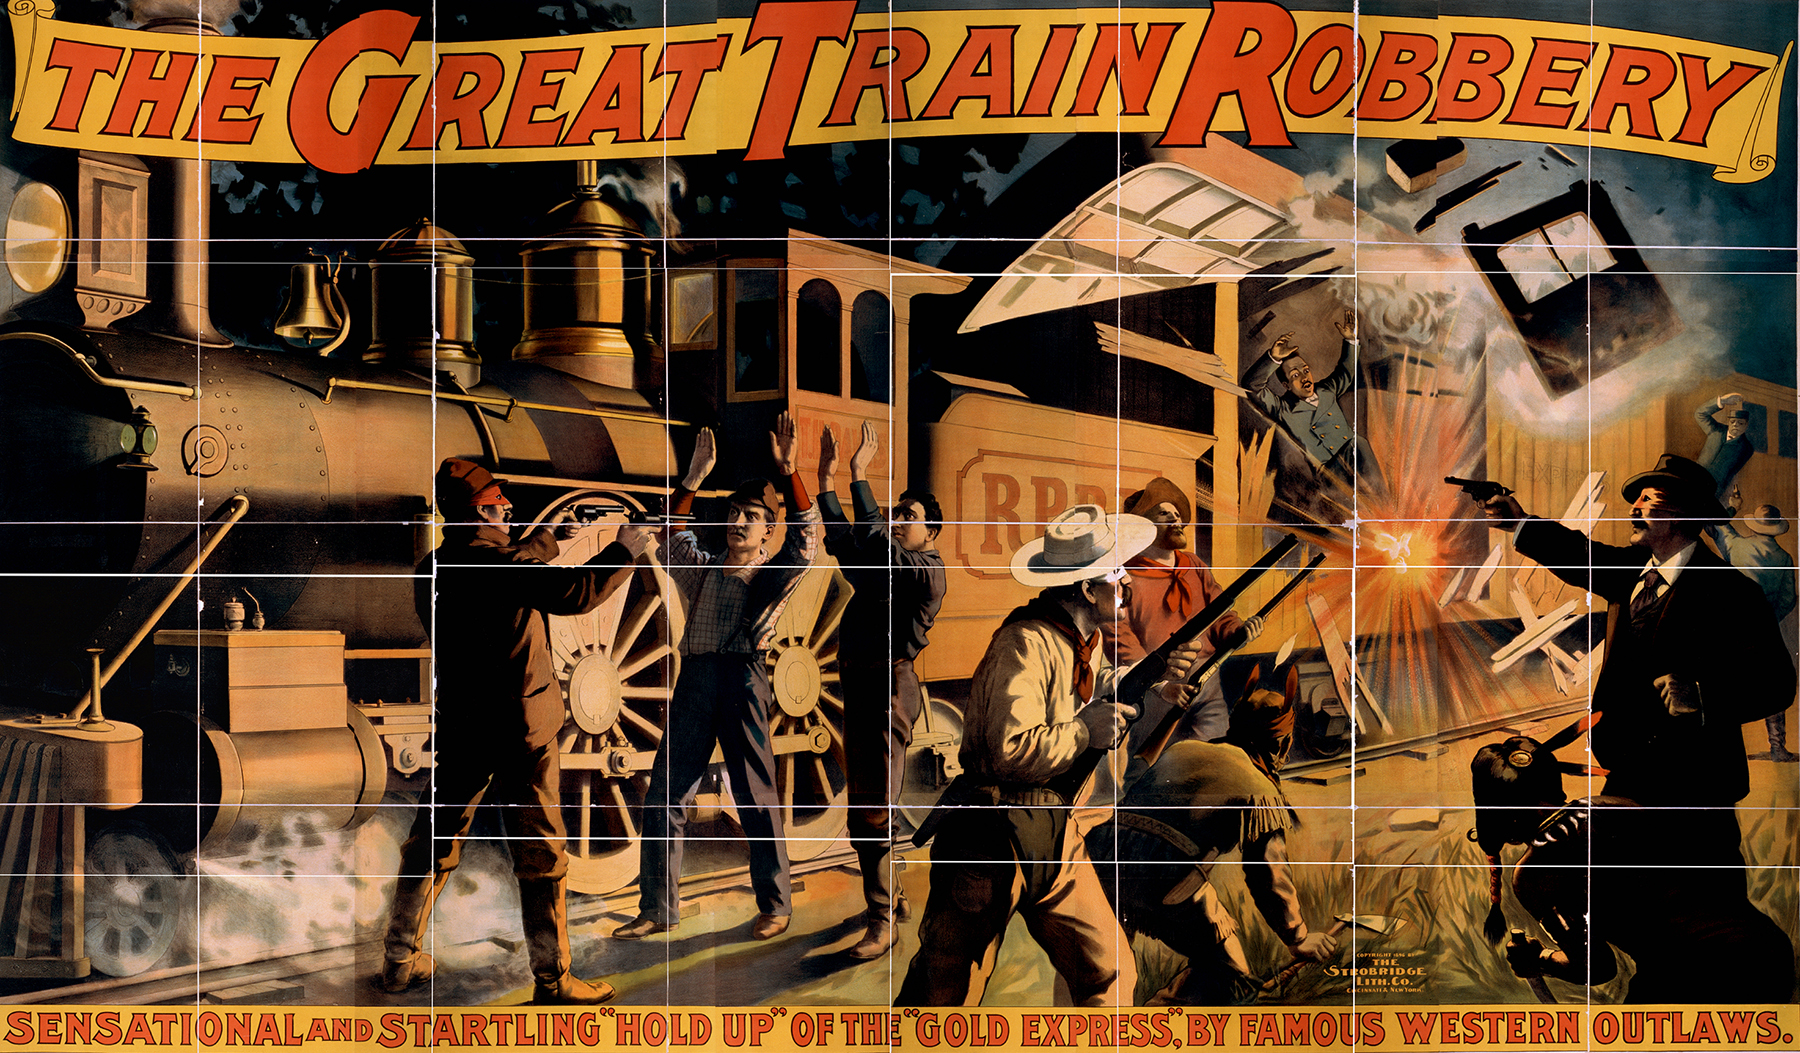 film and great train robbery Those who love a good heist should enjoy the great train robbery some of the intricacy is lost in the translation to film, but it's still very solid.